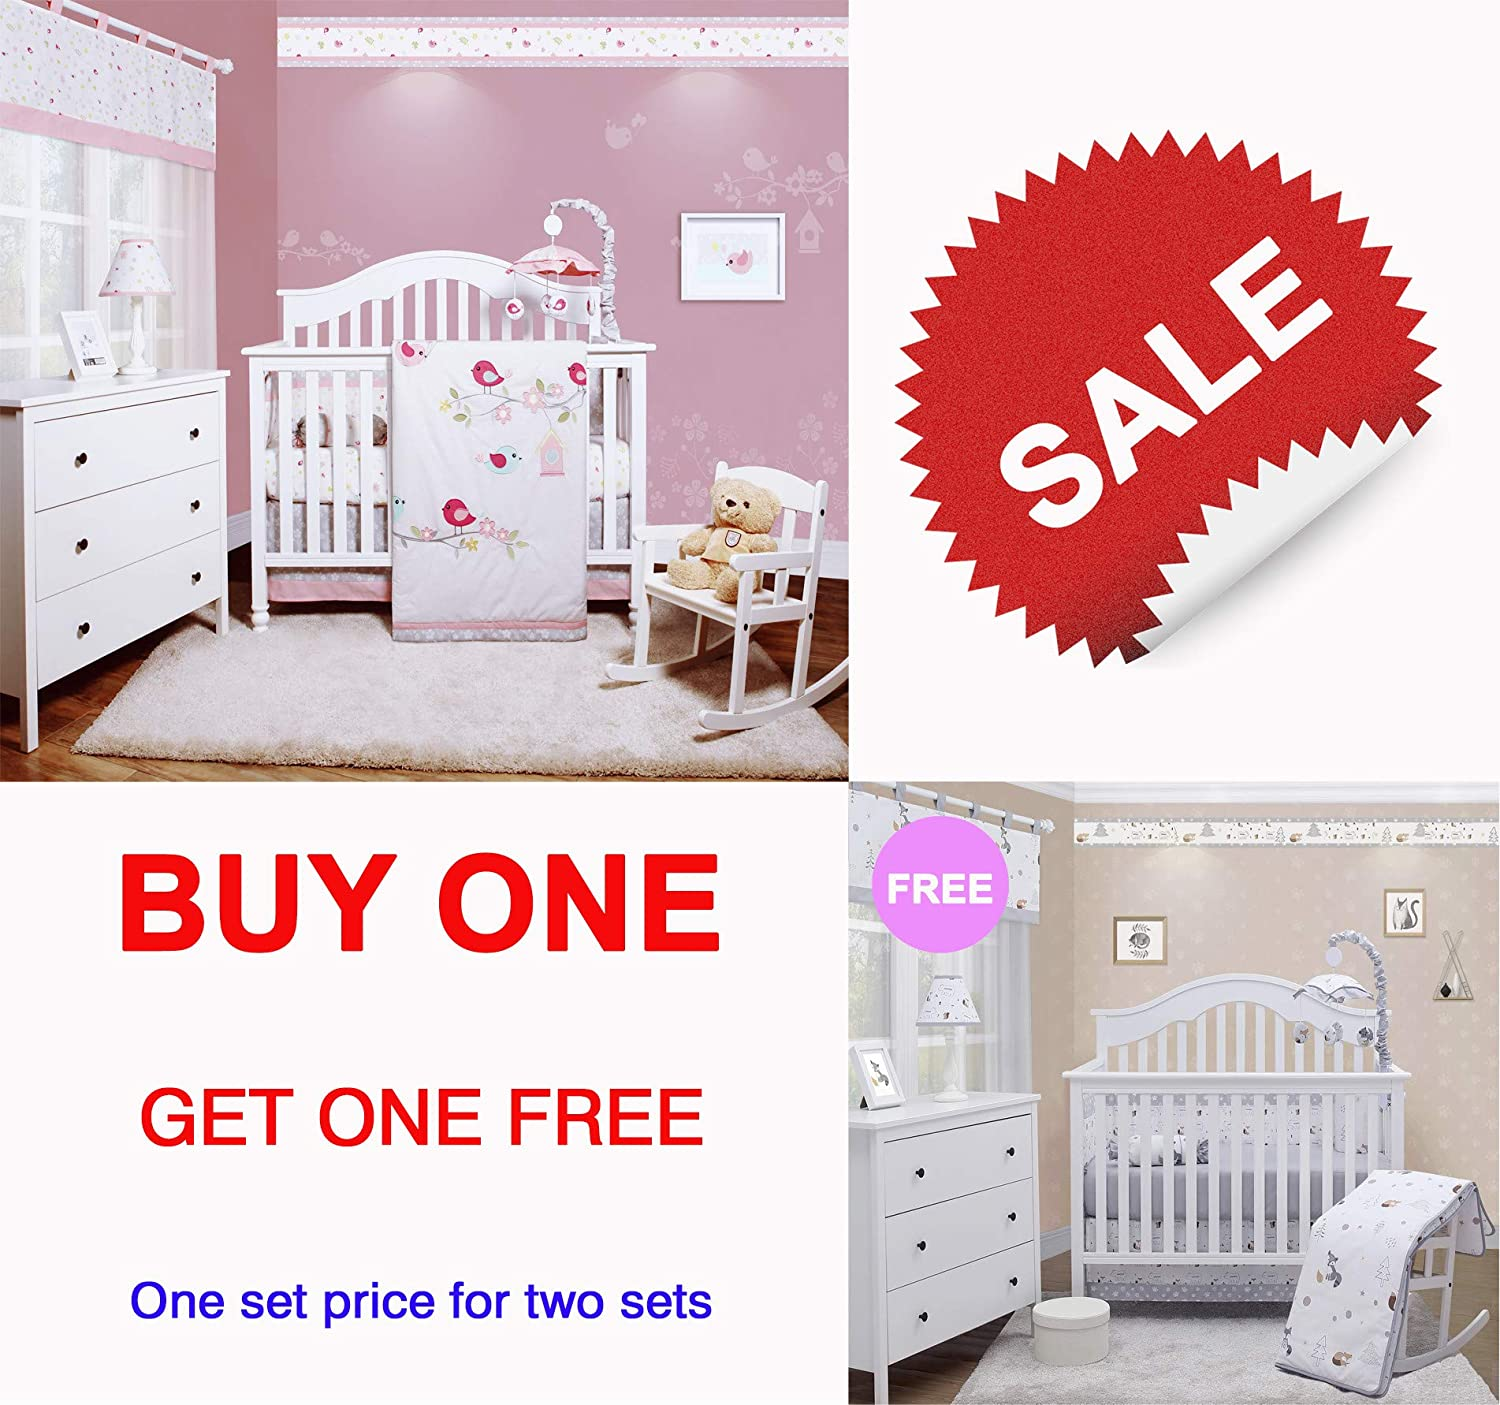 GEENNY OptimaBaby 6 Pieces Holiday Special Onsale One Set Price Getting Two Sets - Happy Enchanted Birds 6 Piece Baby Bedding Set and Woodland Forest Fox 6 Piece Nursery Bedding Set